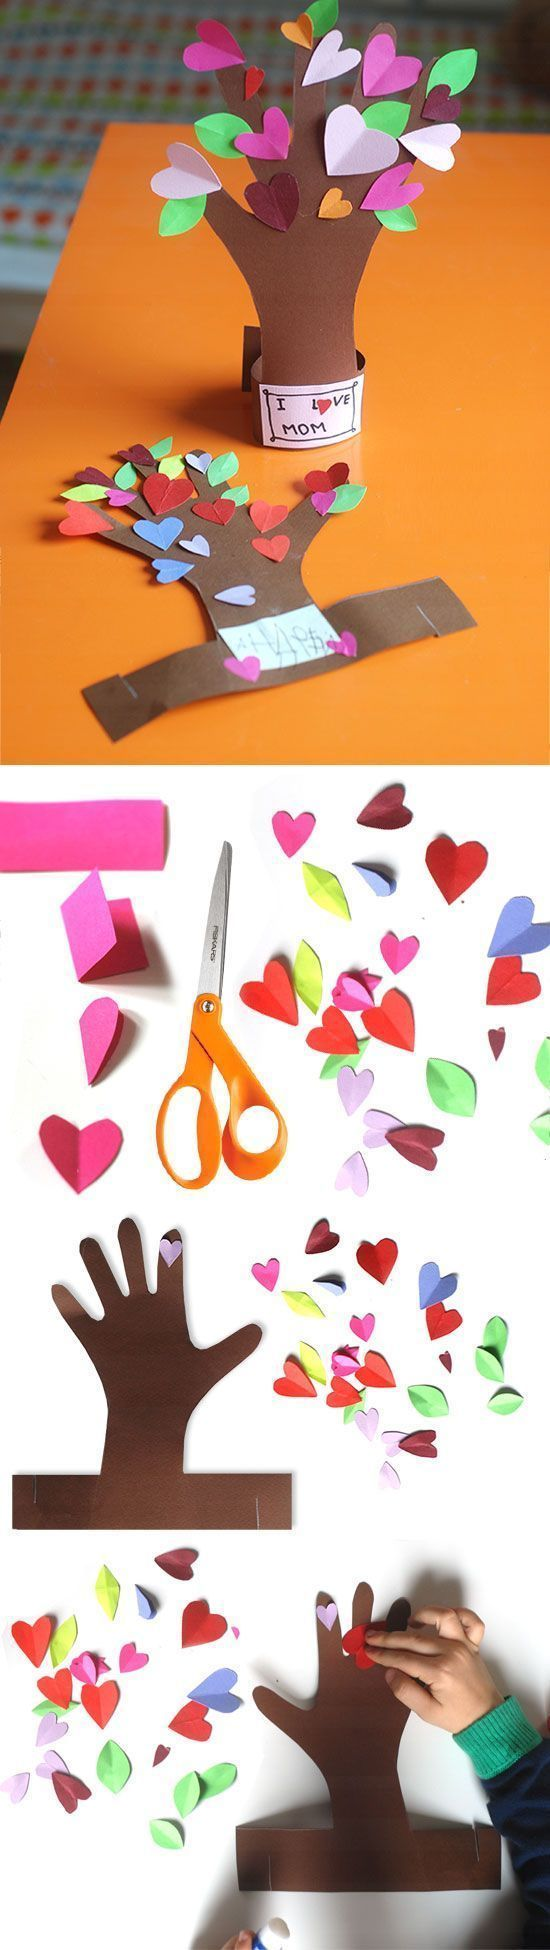 31 Valentines Crafts for Kids to Make | Crafts and DIY | Pinterest | Valentine's day crafts for kids, Valentine day crafts and Crafts for kids